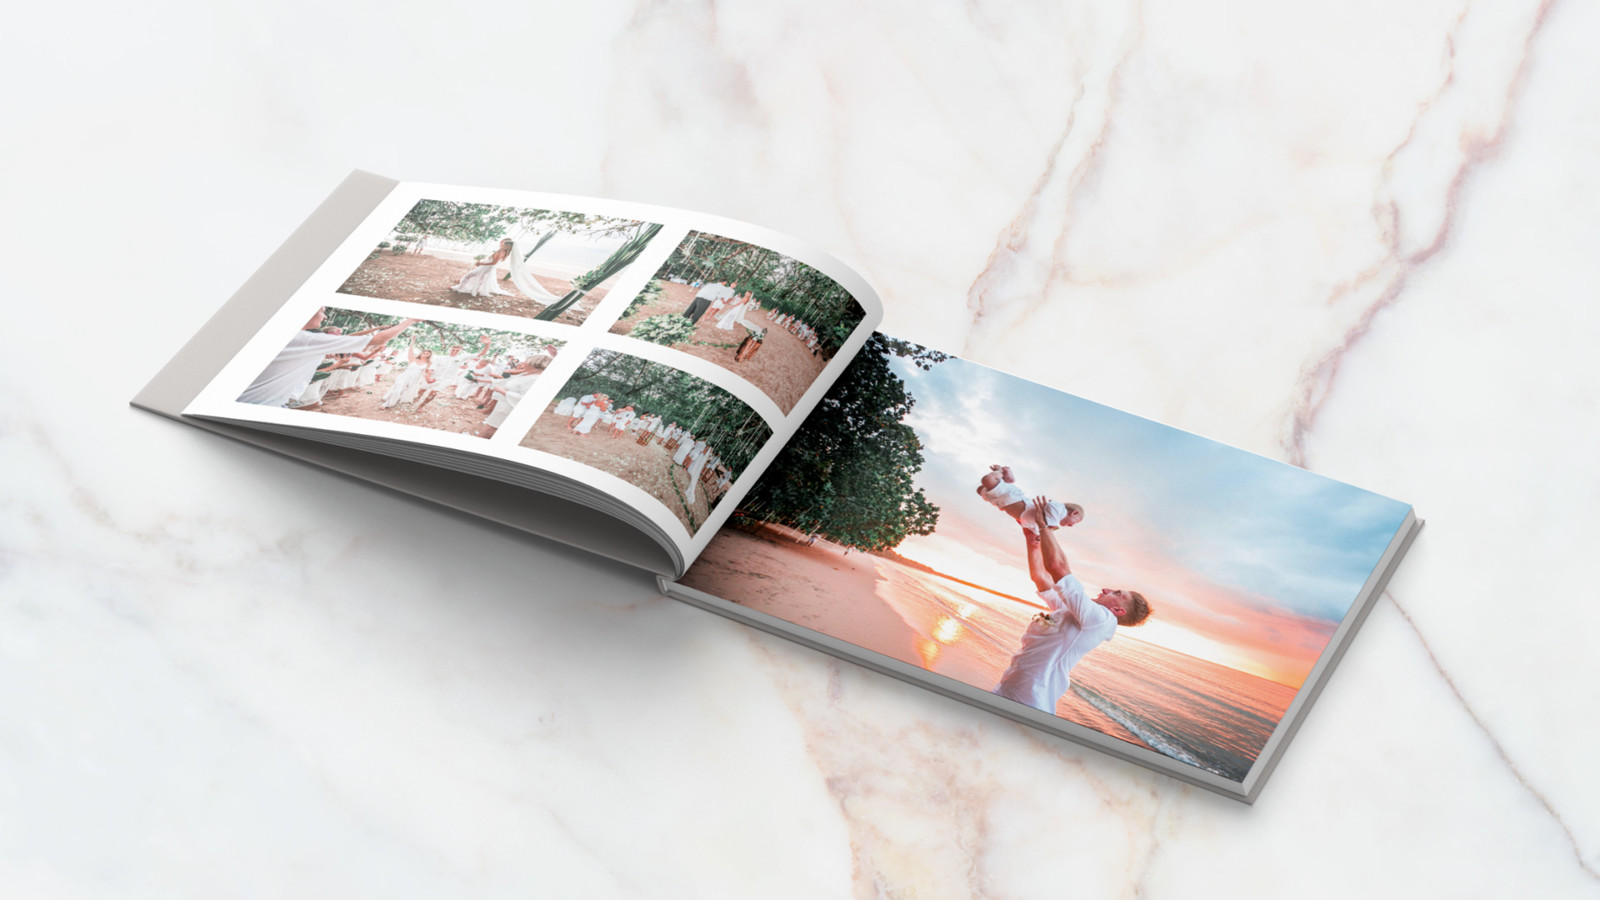 This is an internal view of the landscape photo book